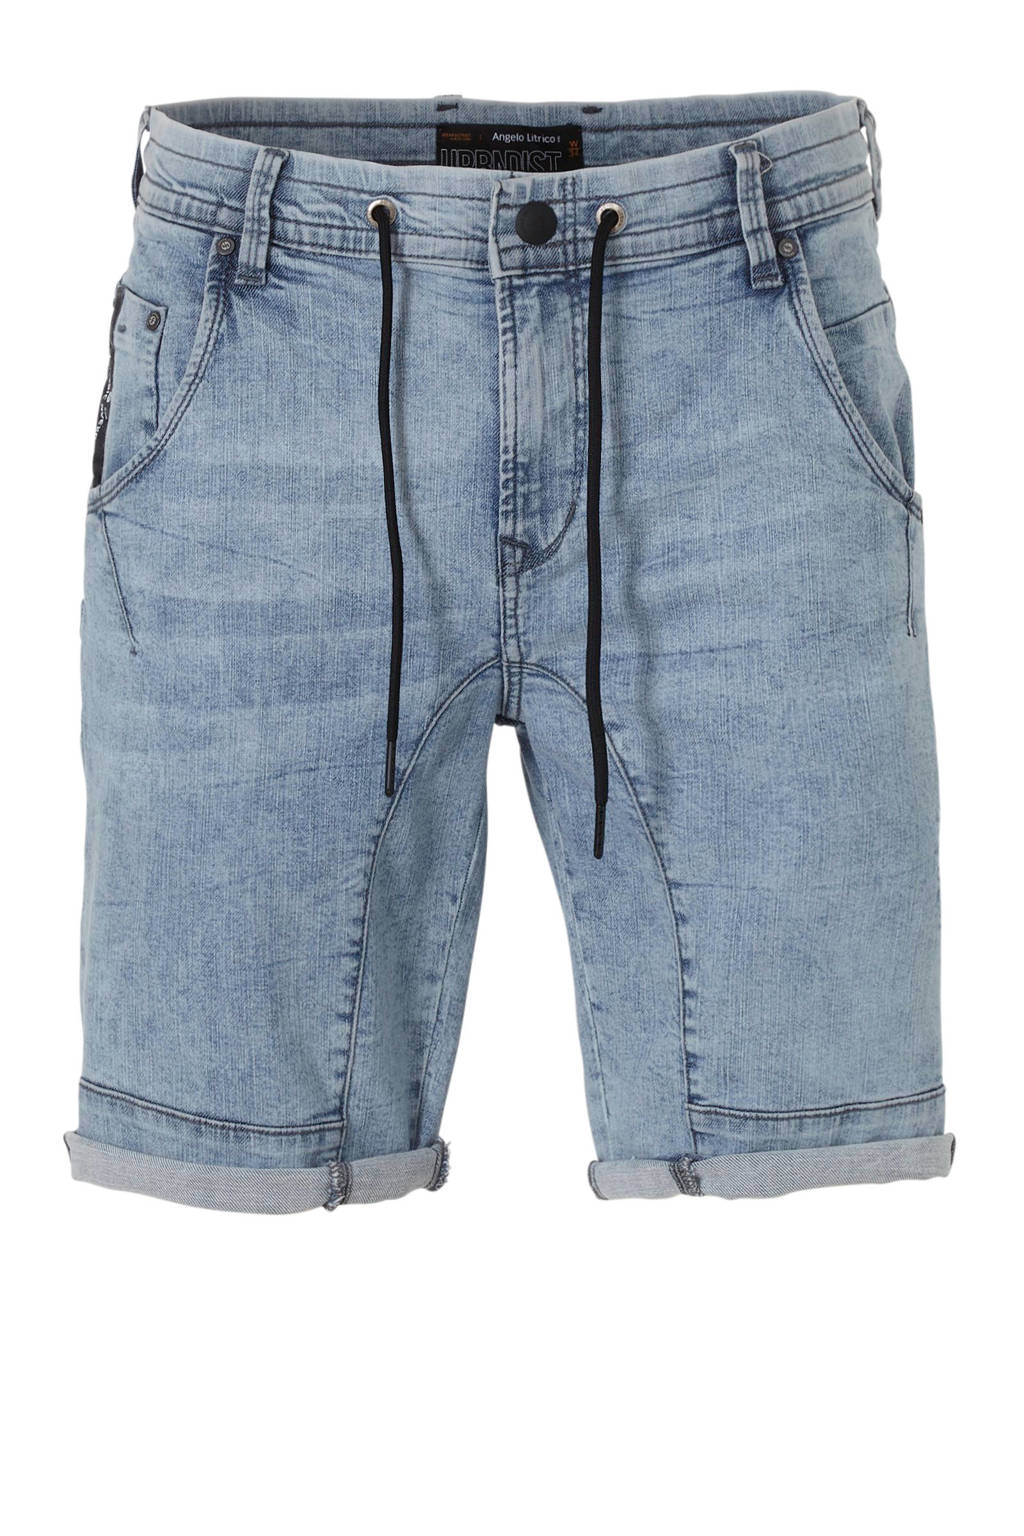 C&A Angelo Litrico regular fit jeans short, Lichtblauw